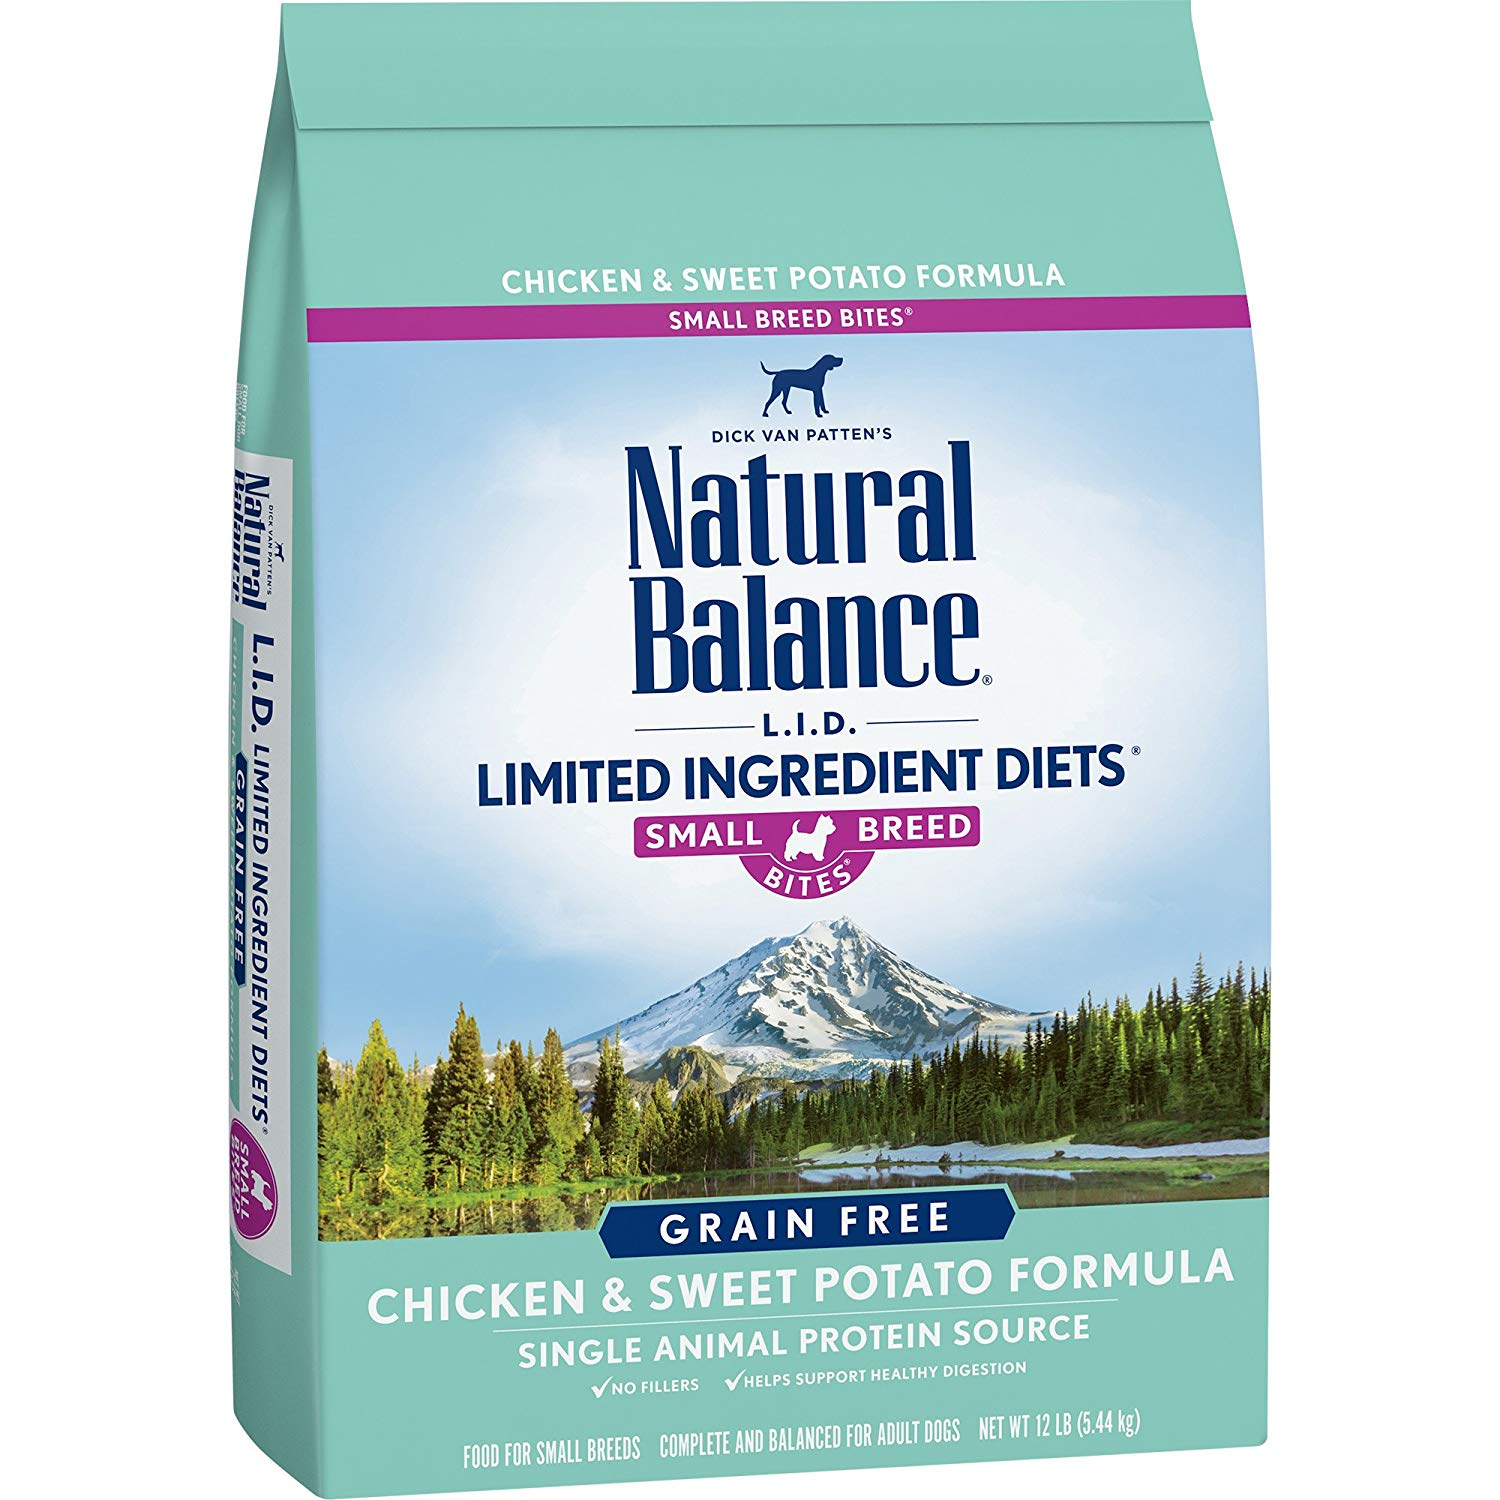 Natural Balance Small Breed Bites L.I.D. Limited Ingredient Diets Dry Dog Food, Grain Free, Chicken & Sweet Potato Formula